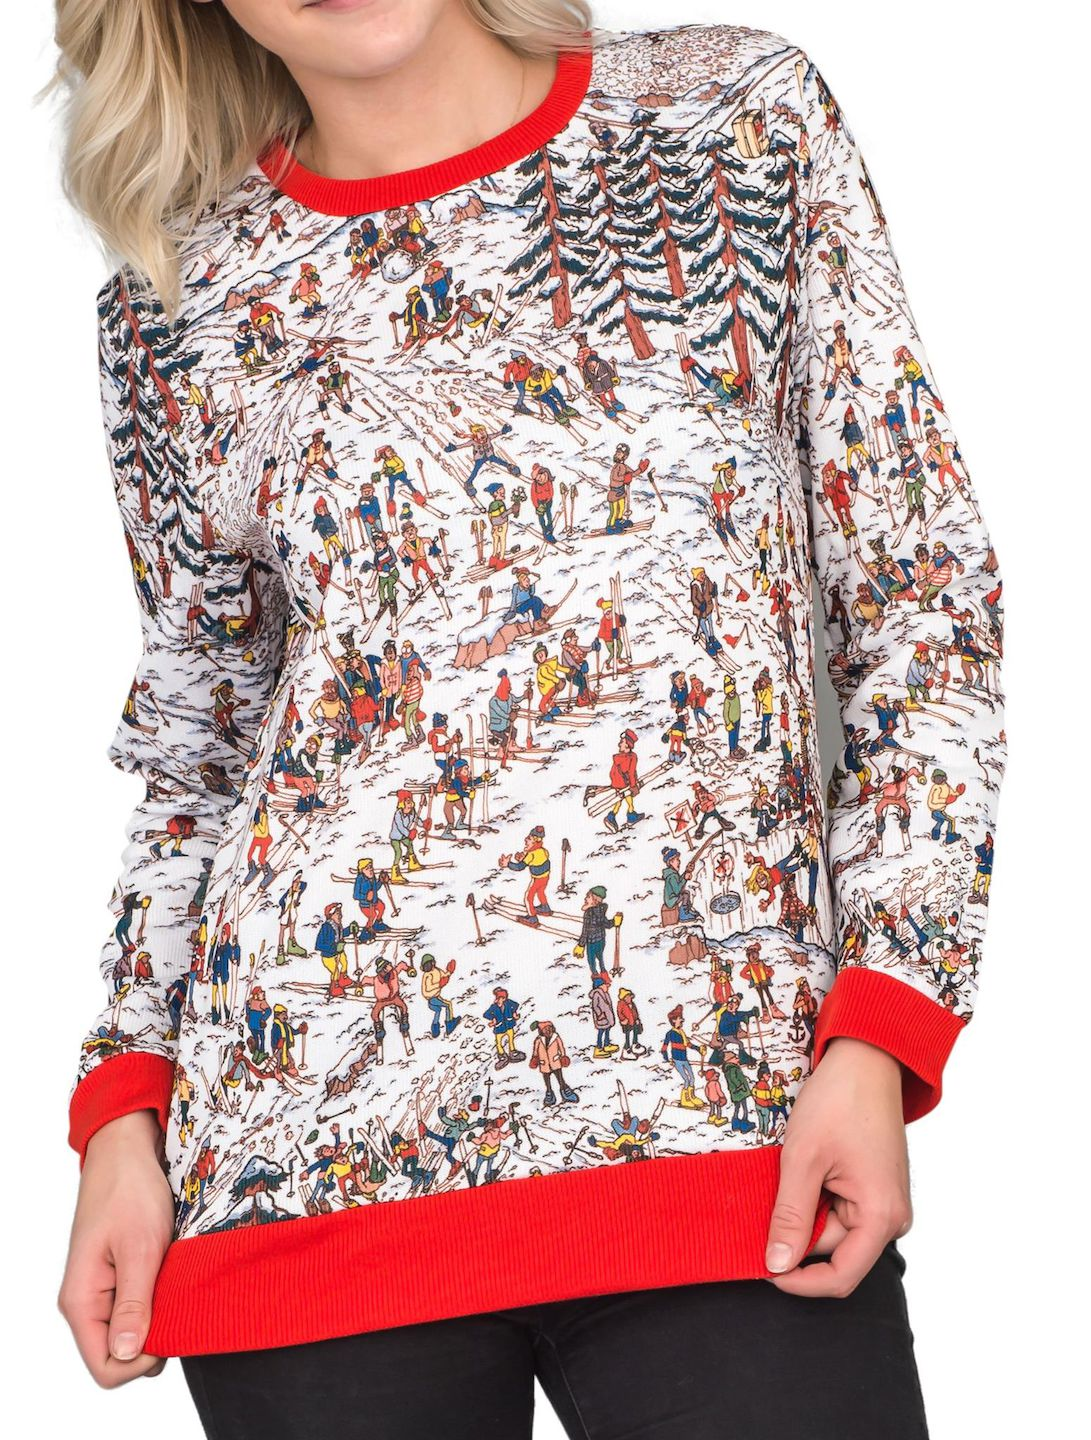 629b5c24e8 Mad Engine - Where is Waldo Snow Mountain Long Sleeve Red and White Sweater  - Walmart.com